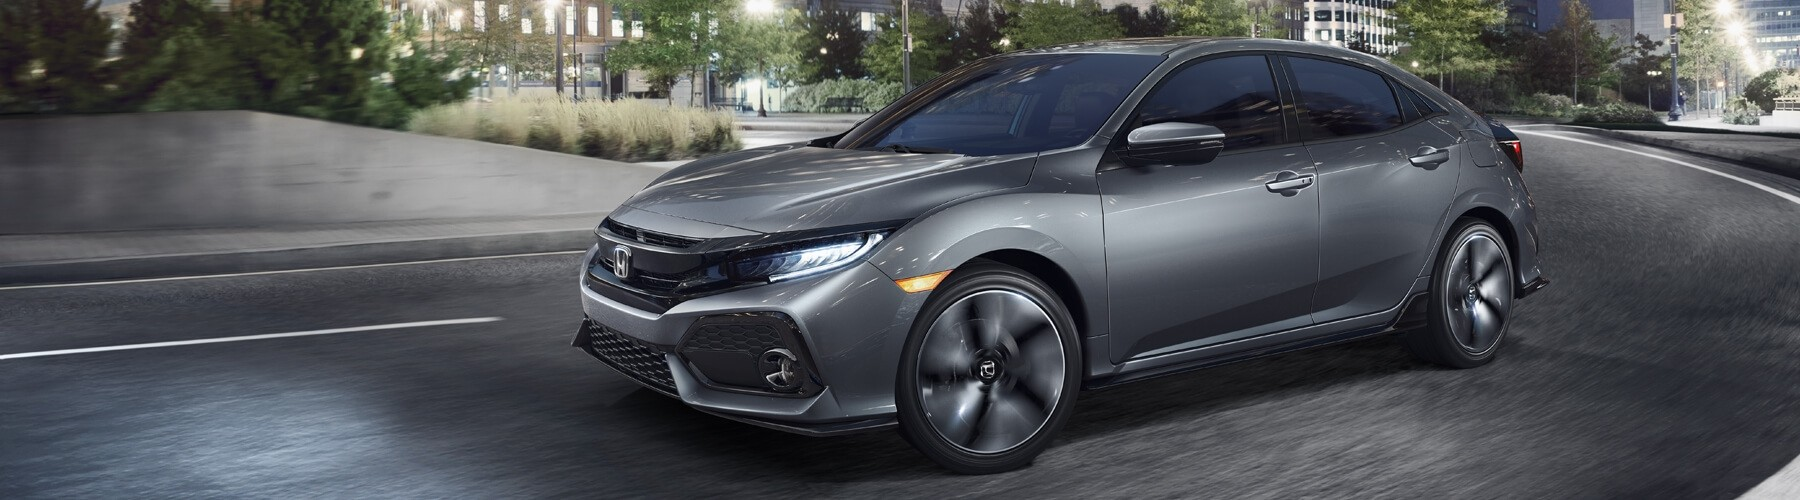 2018 Honda Civic Hatchback Banner